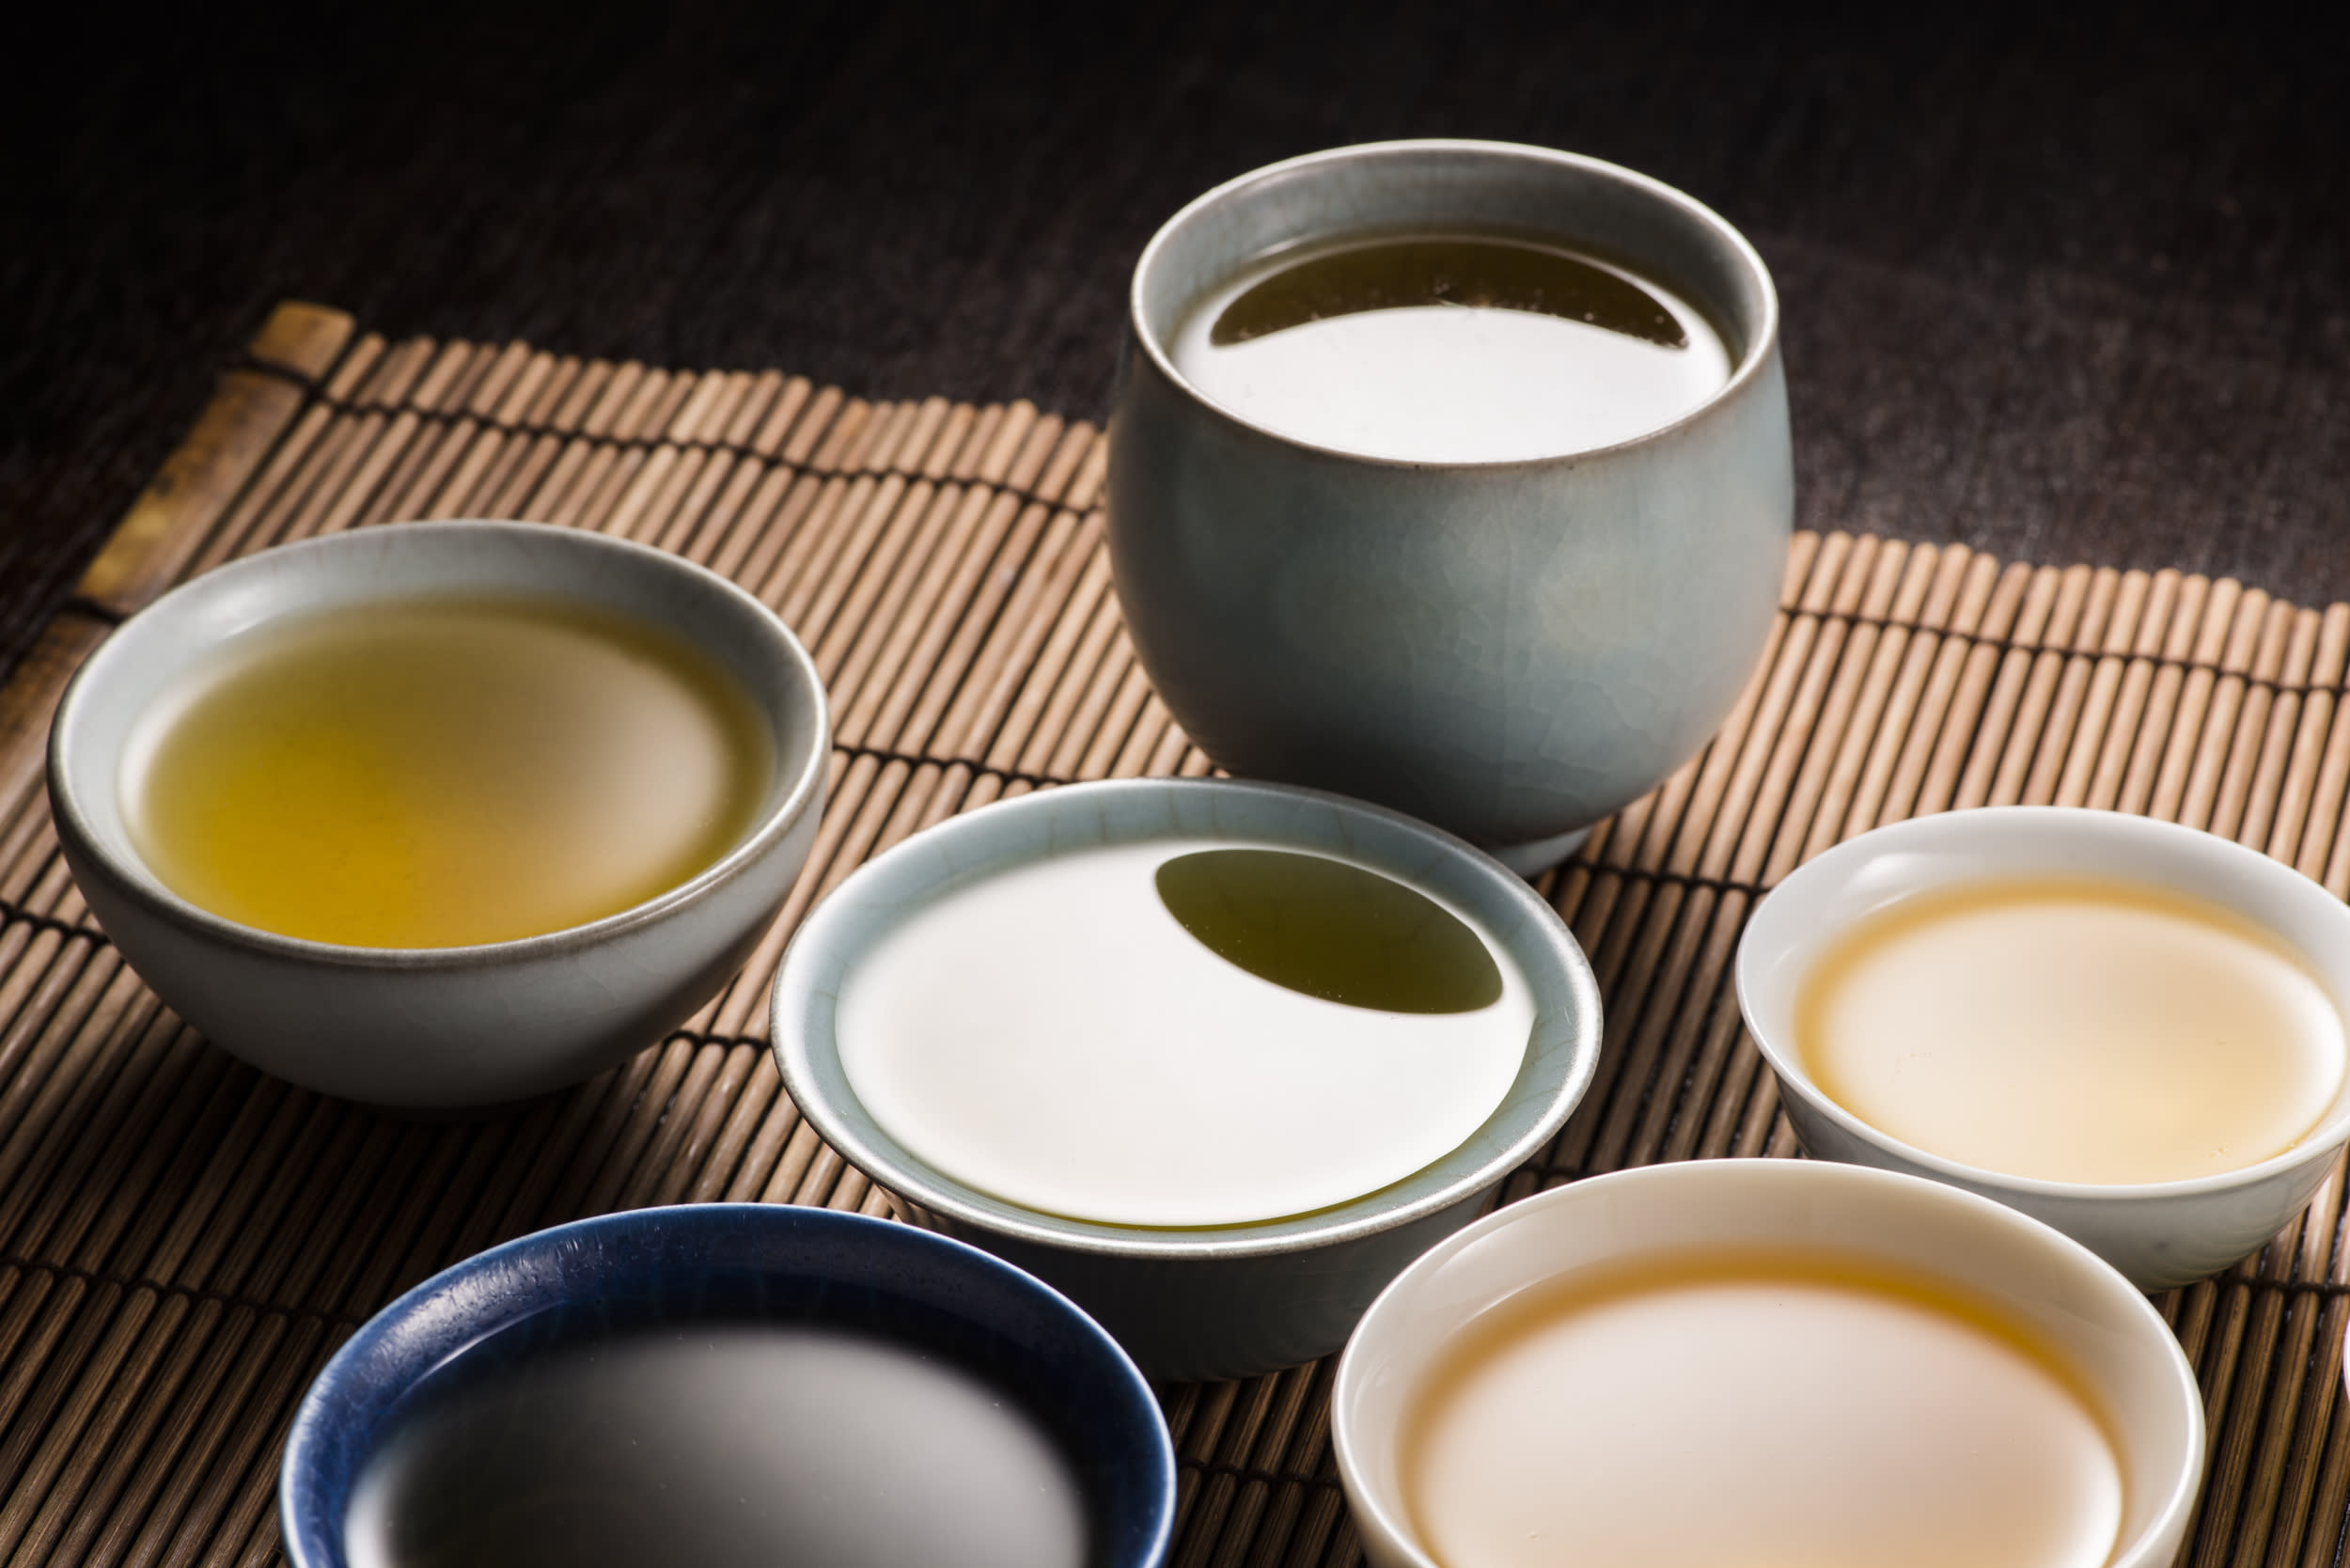 Chinese tea Ceremony, it is about Chinese culture. Chinese oolong tea on a bamboo tray. There are tea cup and teapot. The drink is hot. And the color are yellow,brown,green and blue. And there is highlight reflection on the water surface.